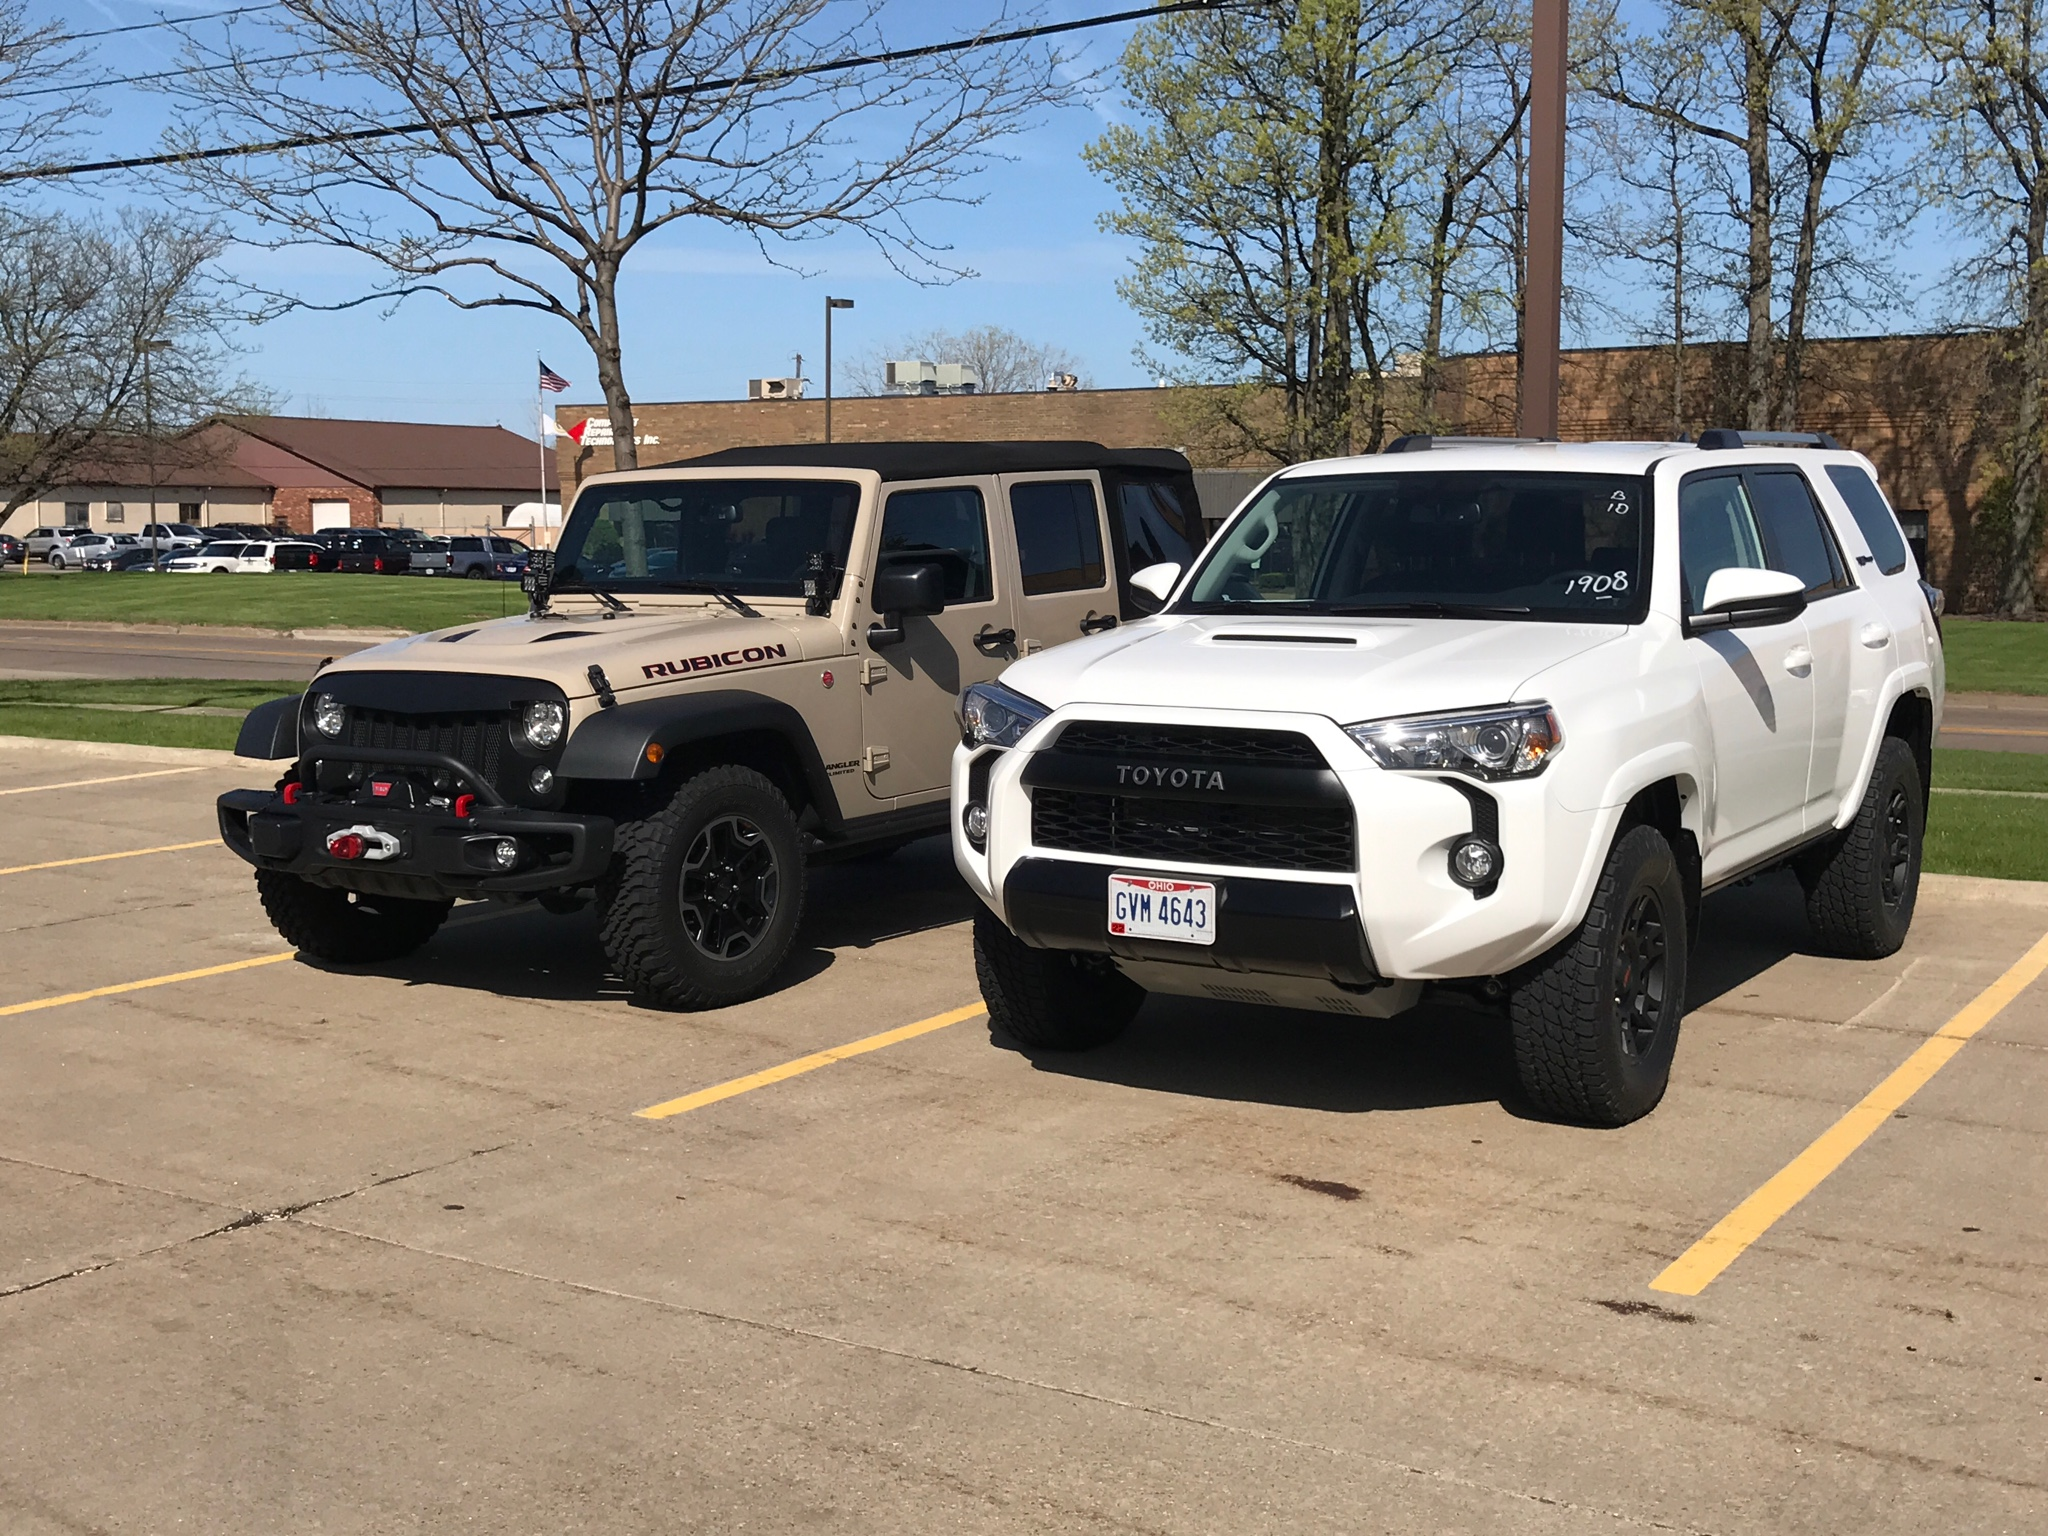 2017 4runner trd pro page 2 toyota 4runner forum largest 4runner - Got To Pick Mine Up This Morning Ordered First Week Of January And Brought It Home Today Said Goodbye To My Rubicon But That S Ok